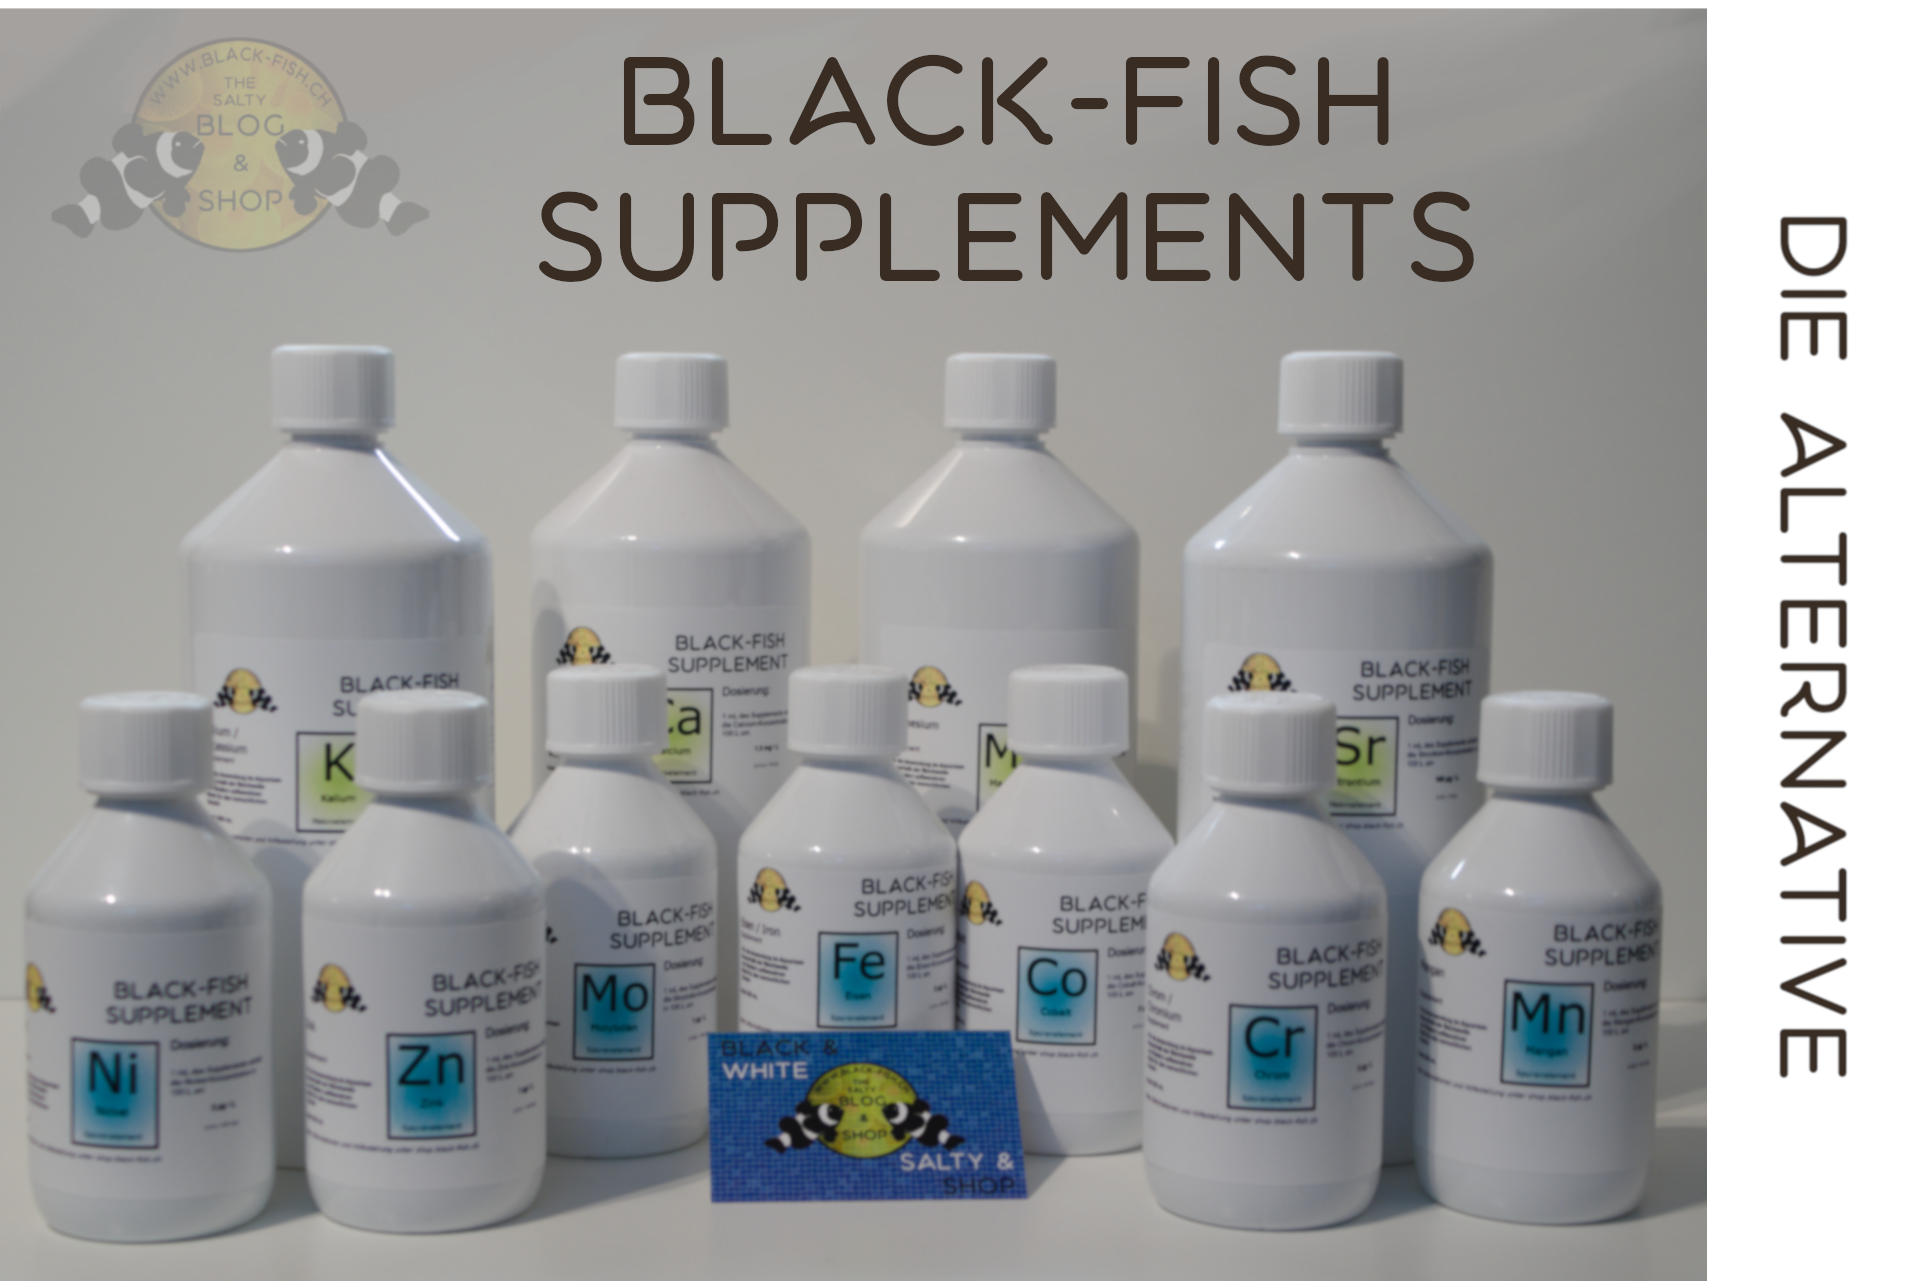 black-fish Supplements